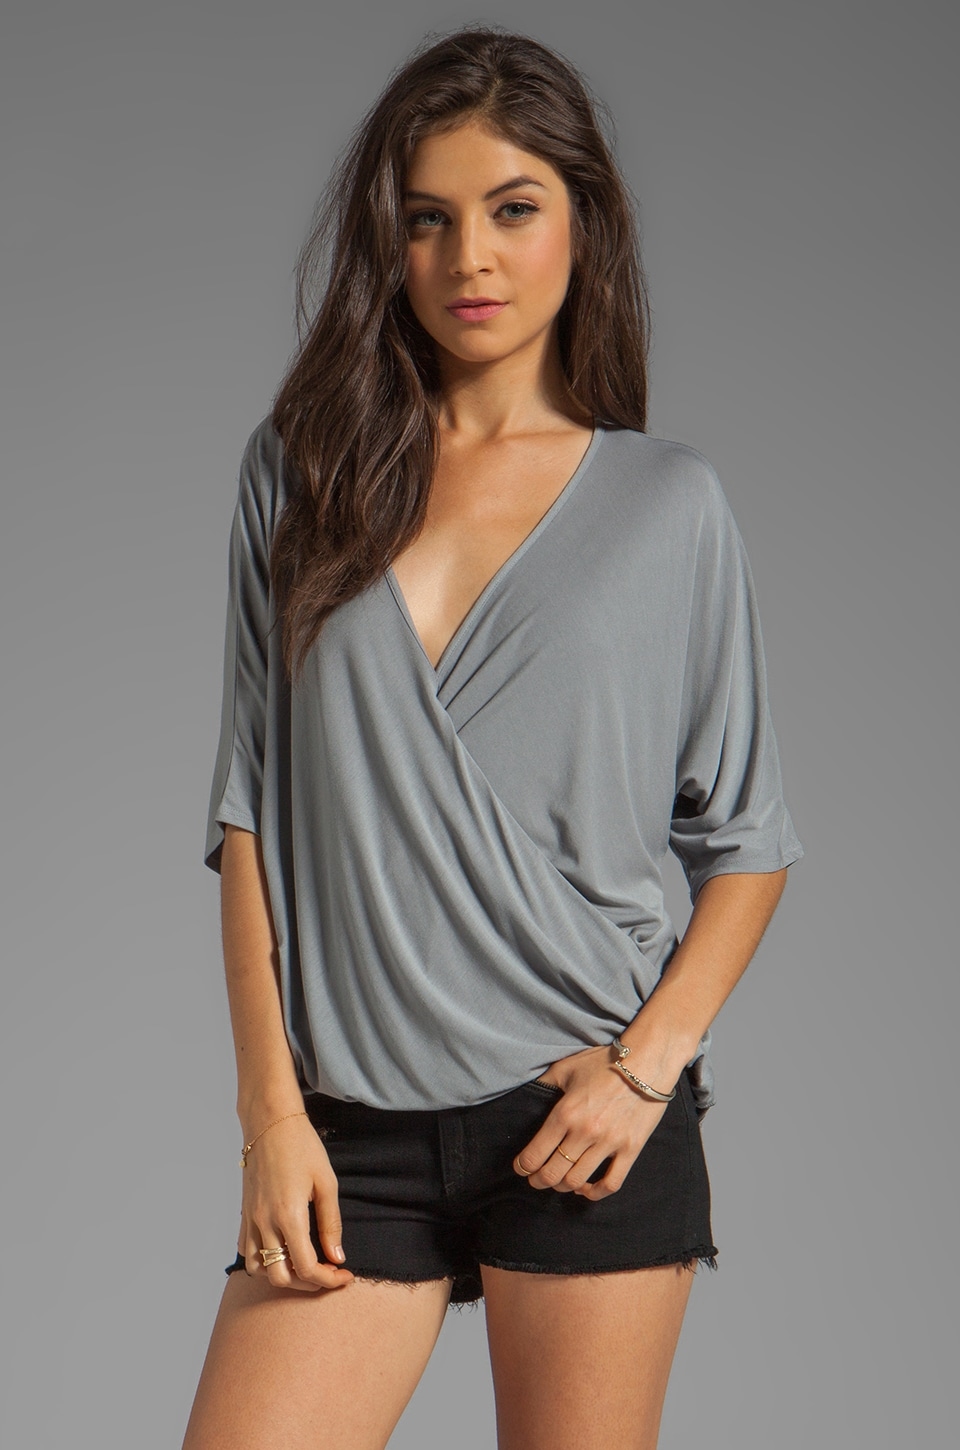 James & Joy Lindsay Blouse in Grey